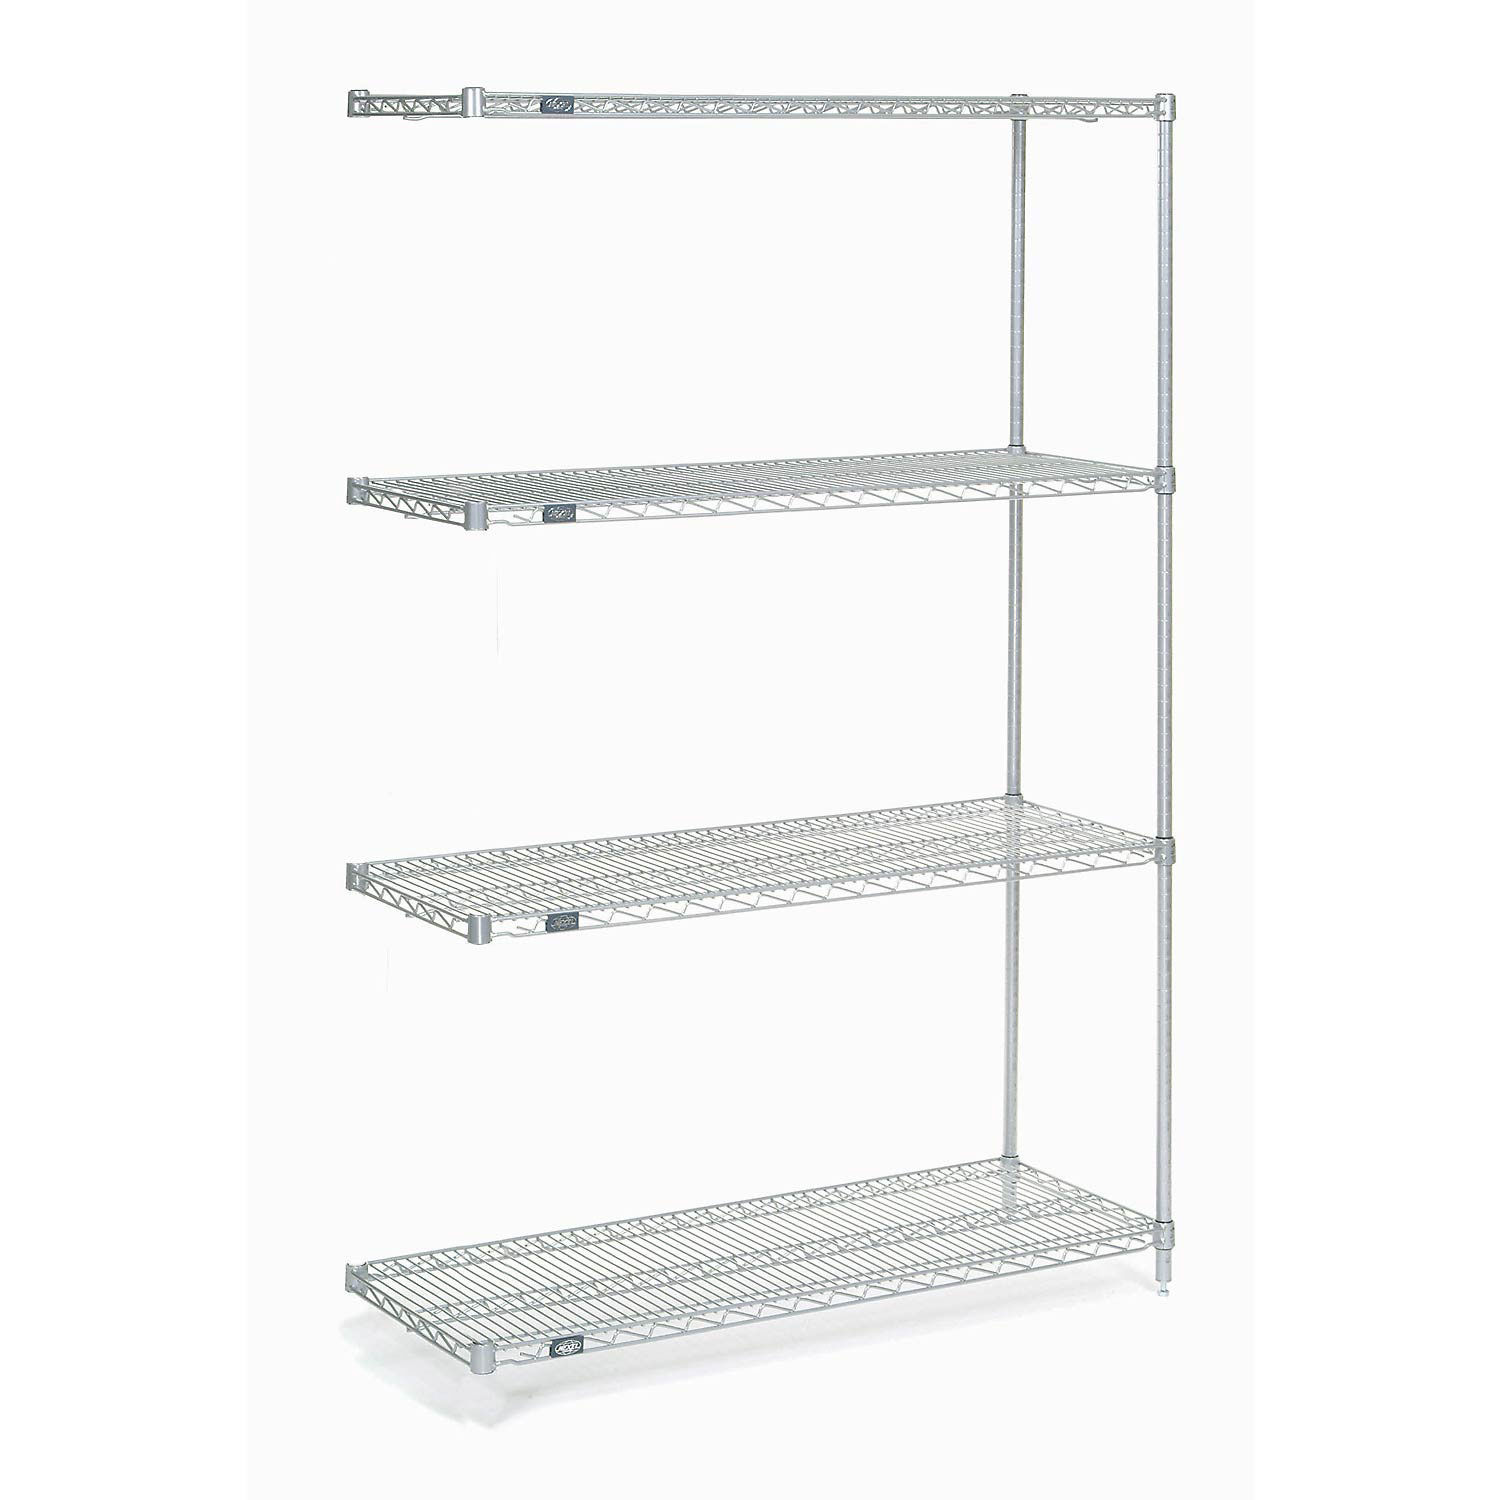 Details About Chrome Wire Shelving Add On 48 W X 14 D X 74 H